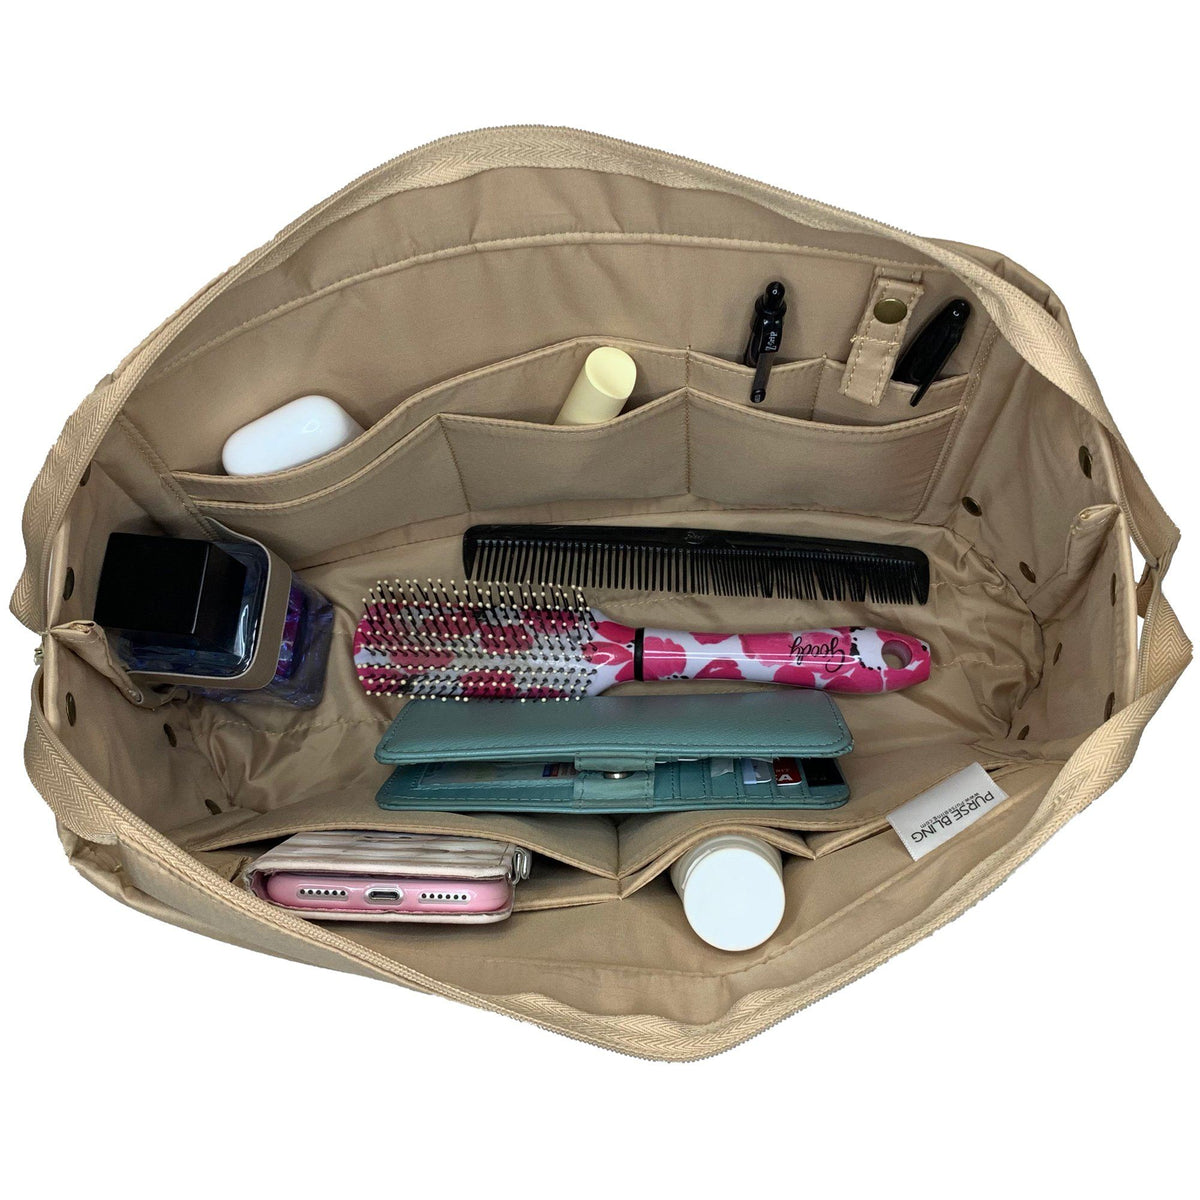 Purse Bling Exclusive Zippered Purse Organizer Insert - Extra Jumbo - Short